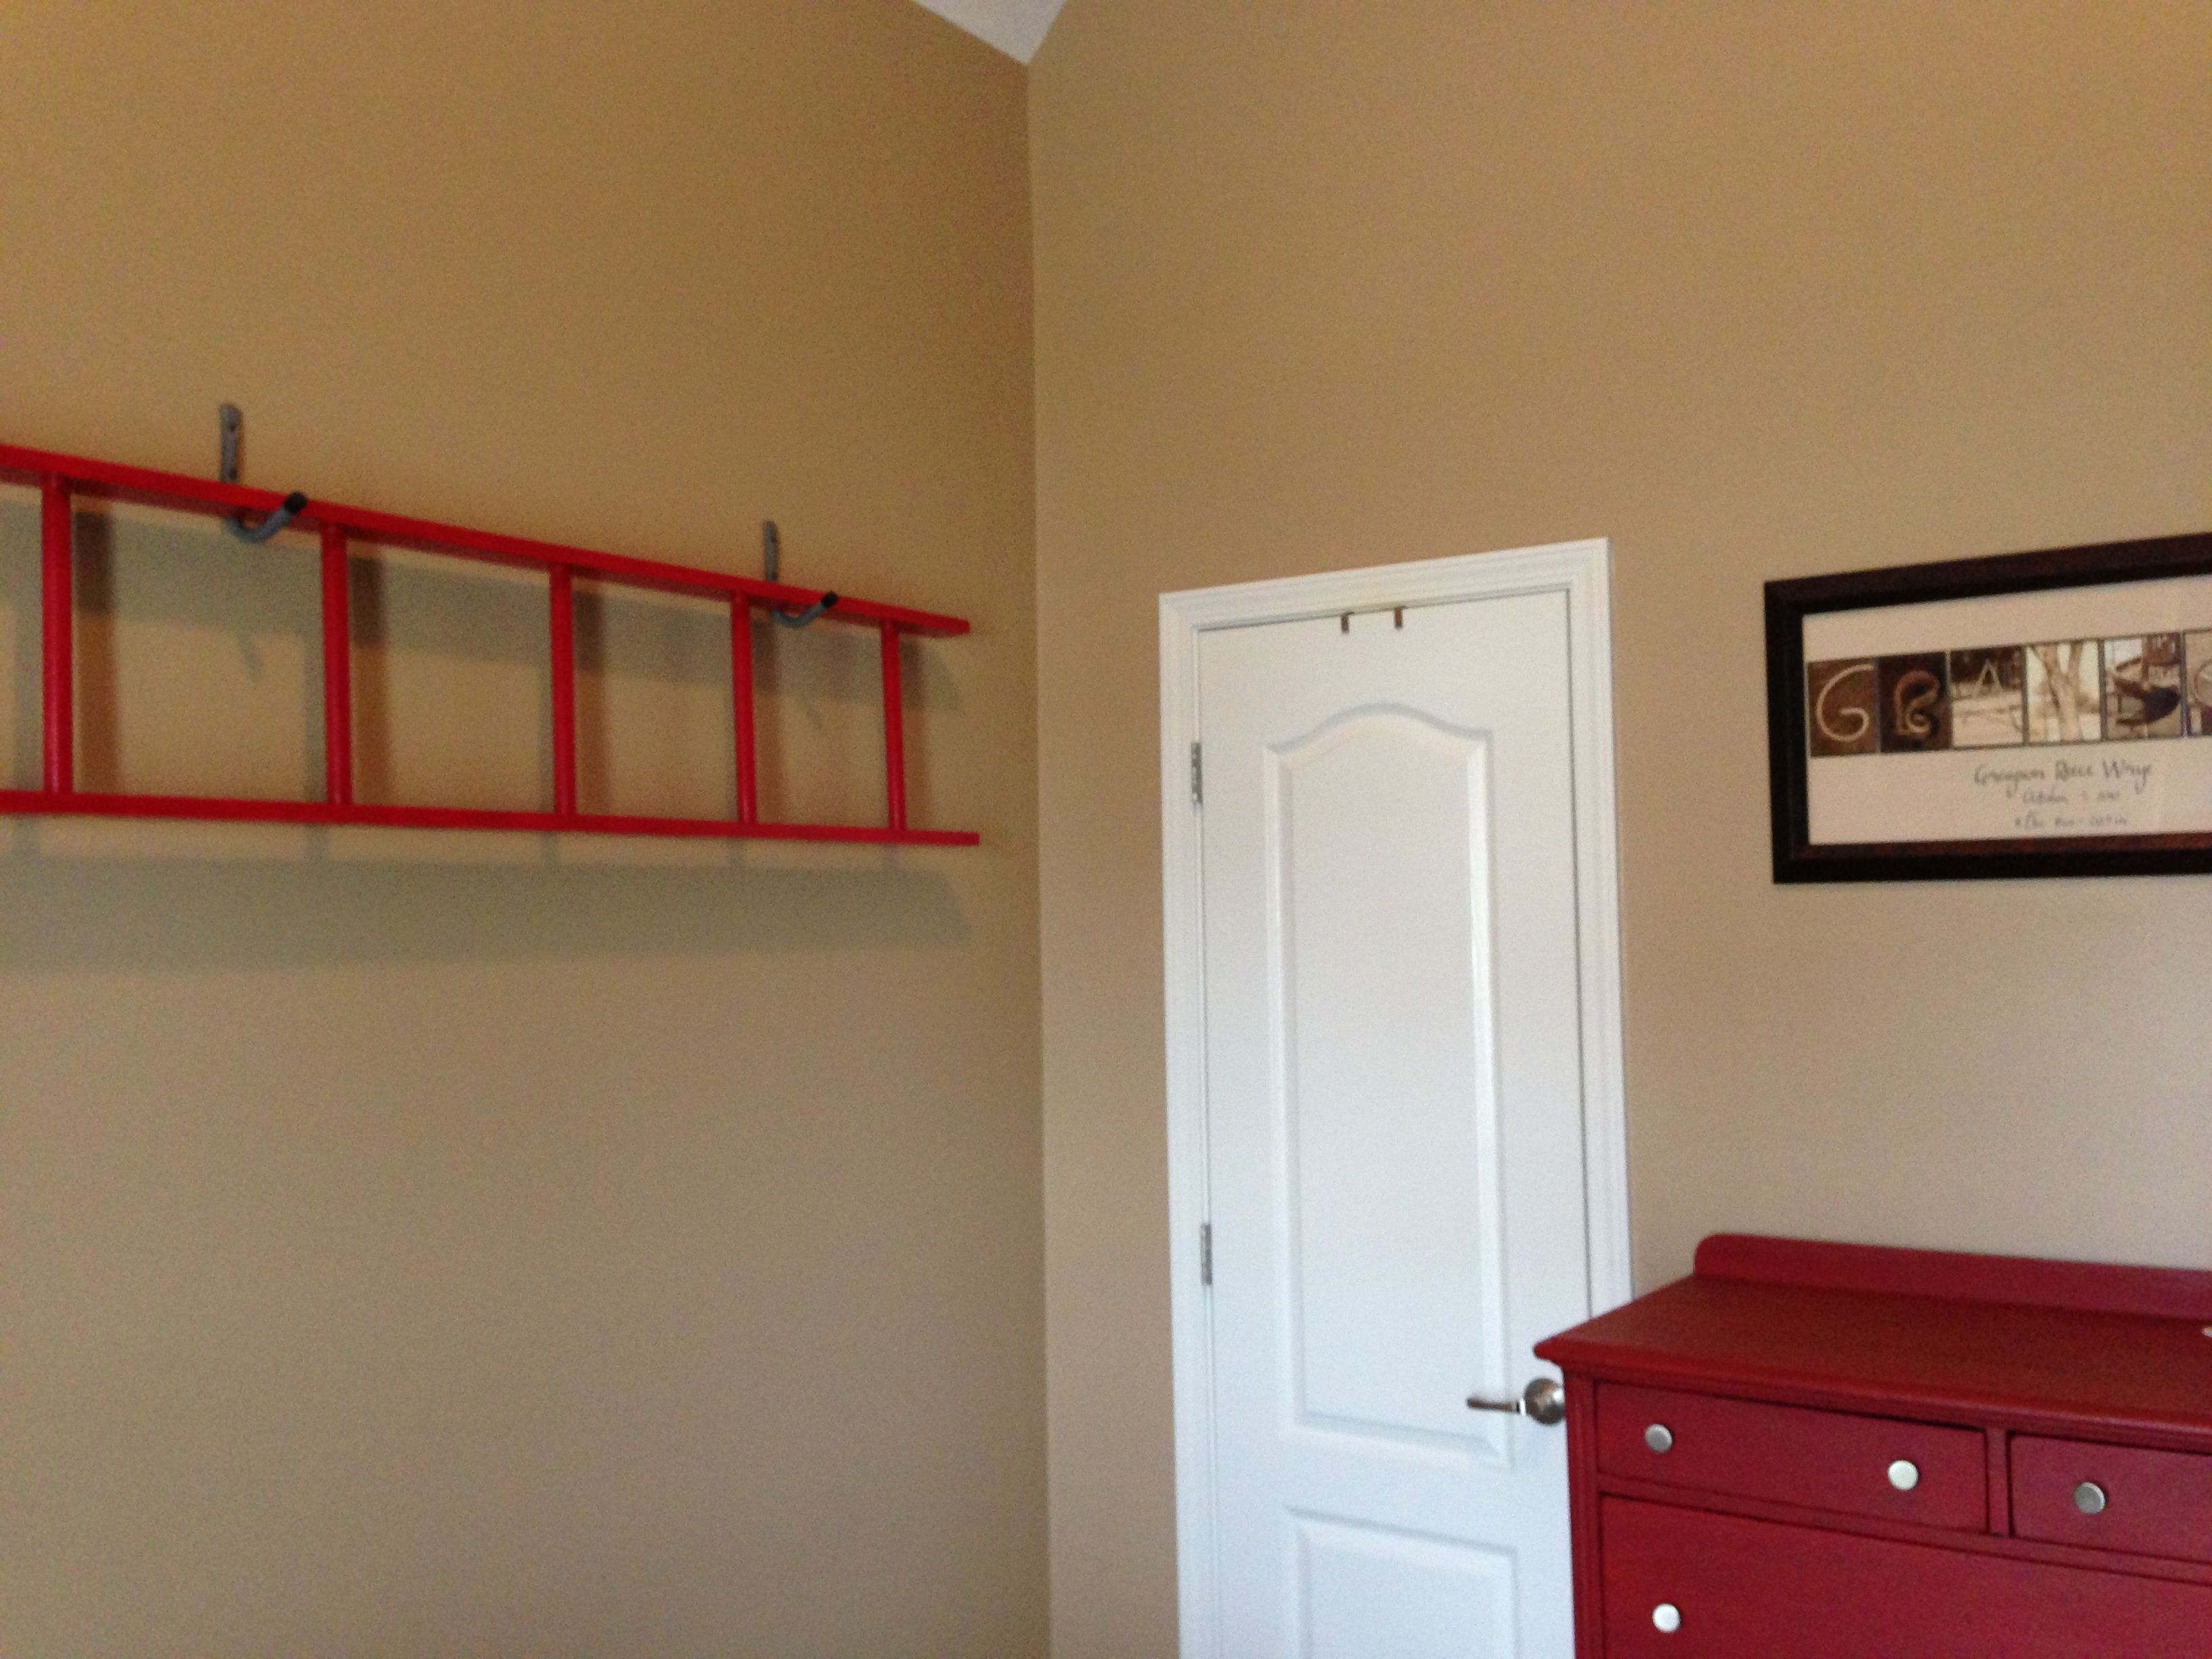 Ladder decor for toddler firetruck room One day